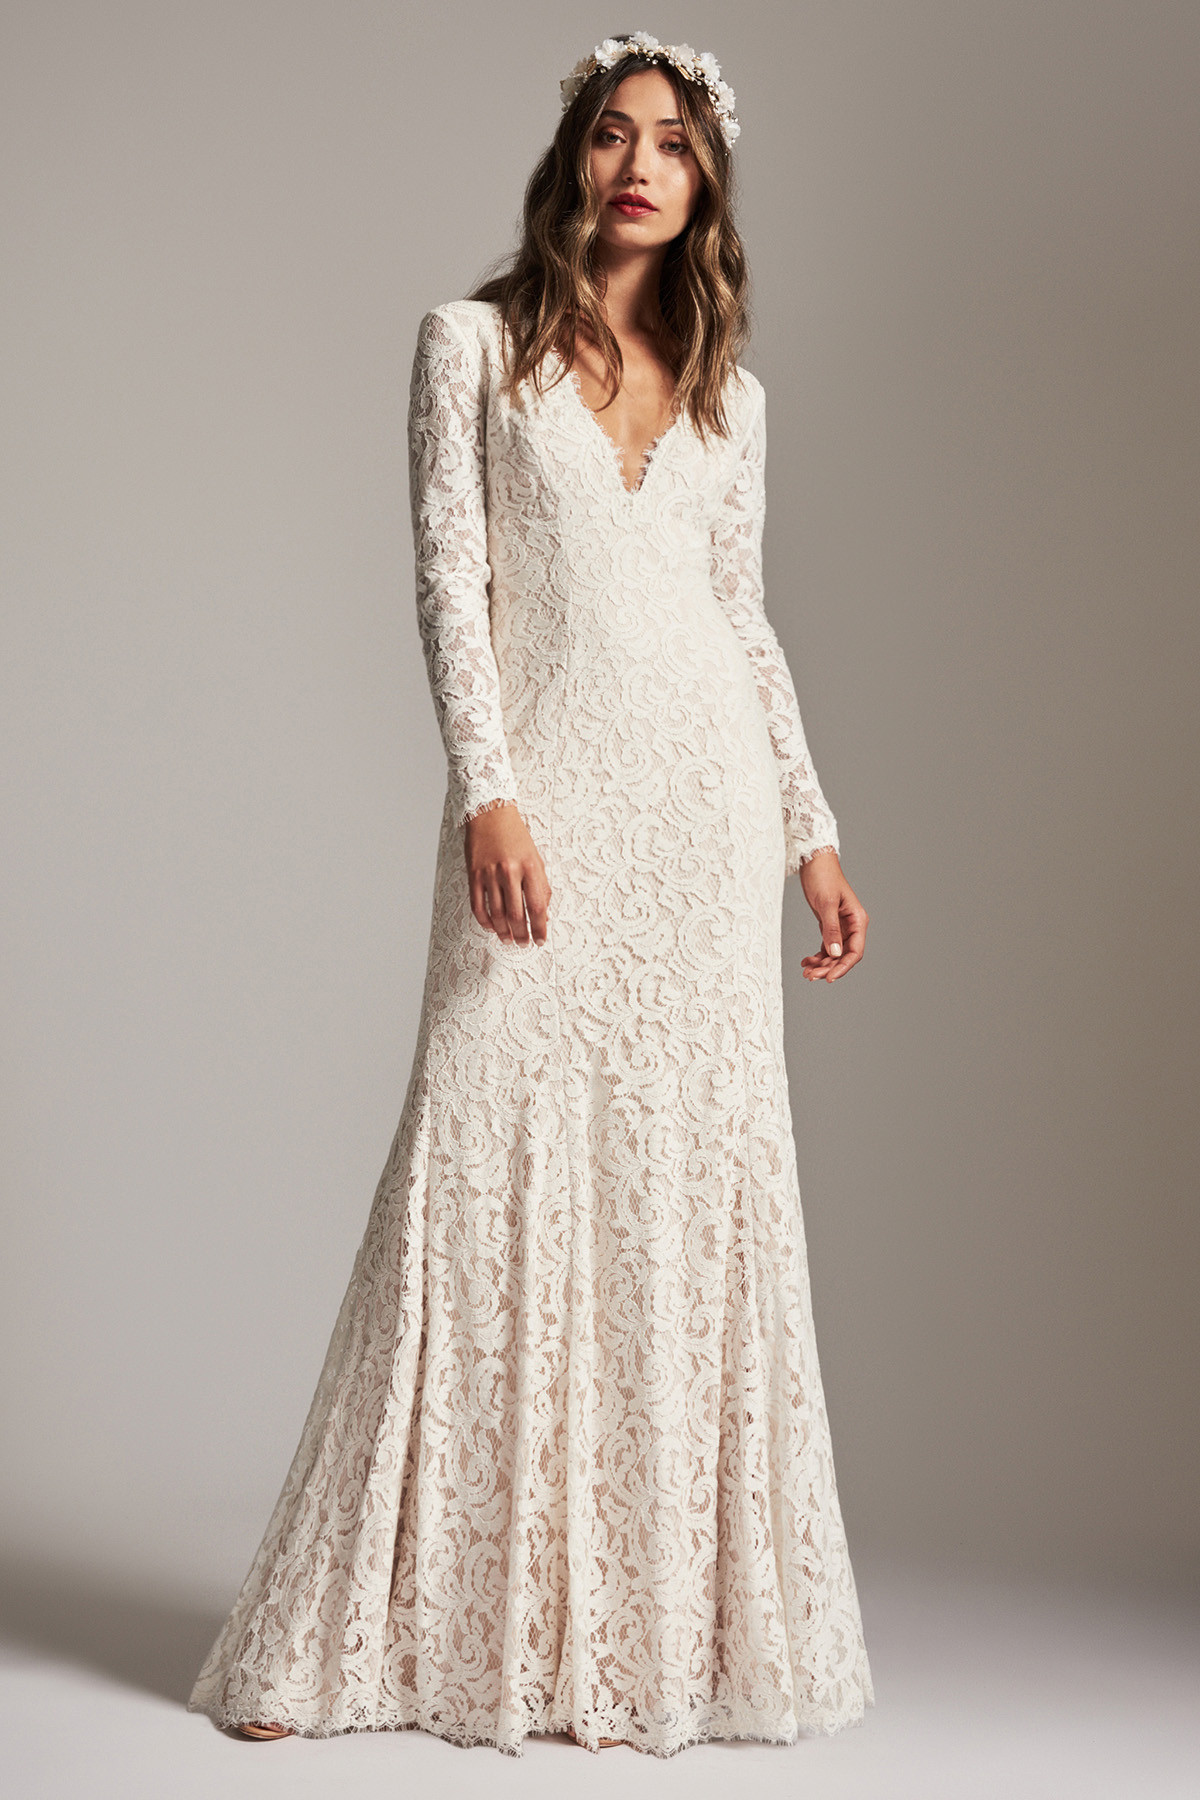 Wedding Dress Shopping: The Best Wedding Dresses Under $500 | Wolf & Stag